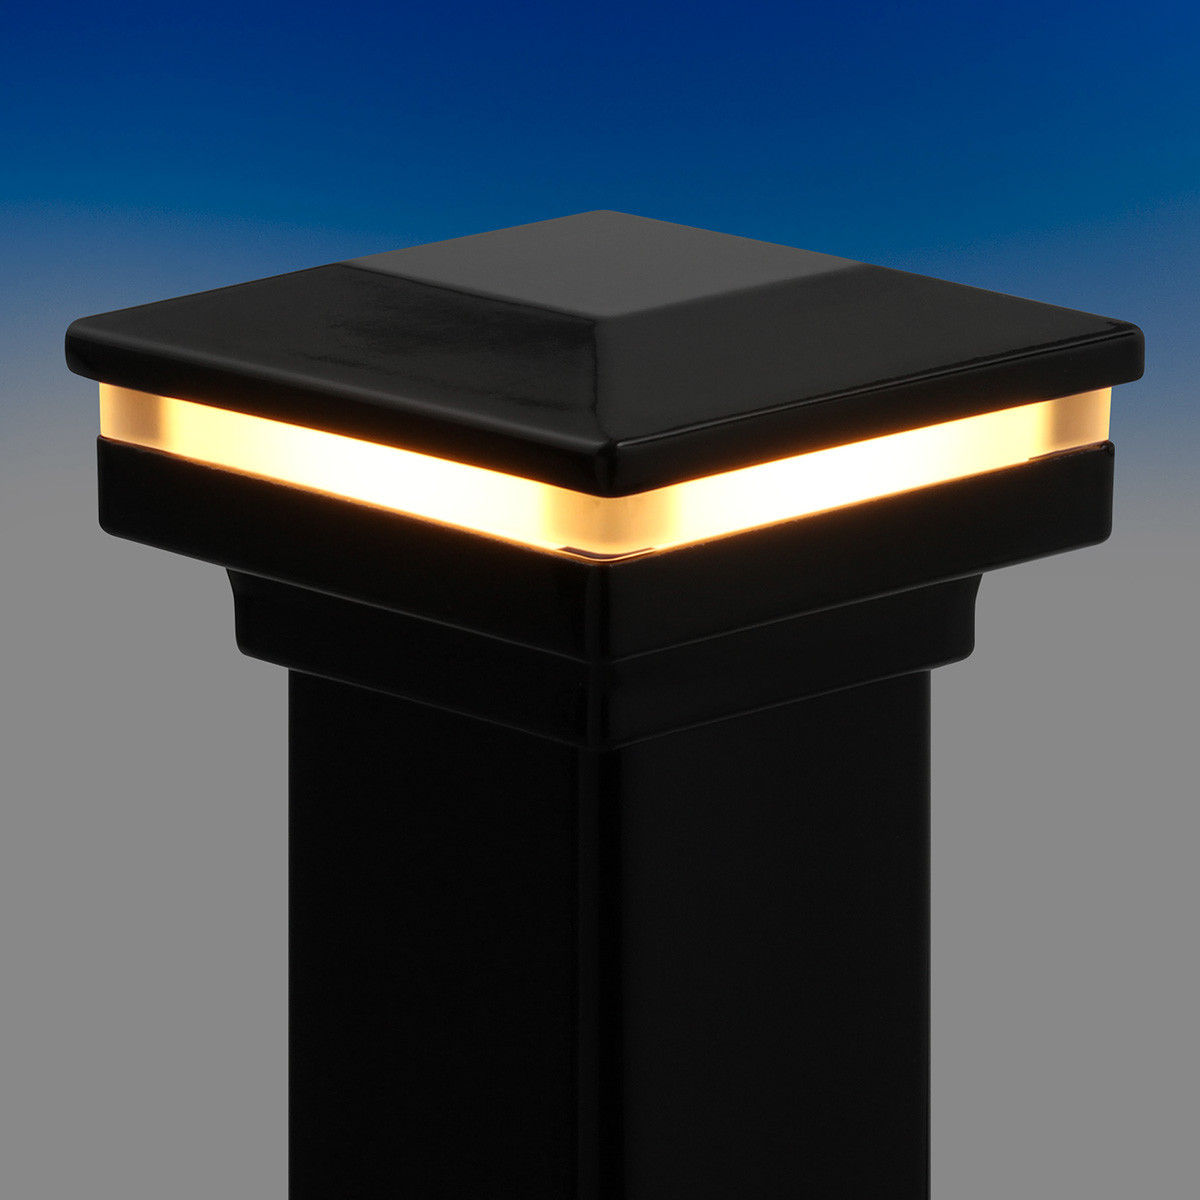 Flat Pyramid Post Cap Kit with LED Cap Glow Ring by Fortress - Gloss Black - 3 in - lit